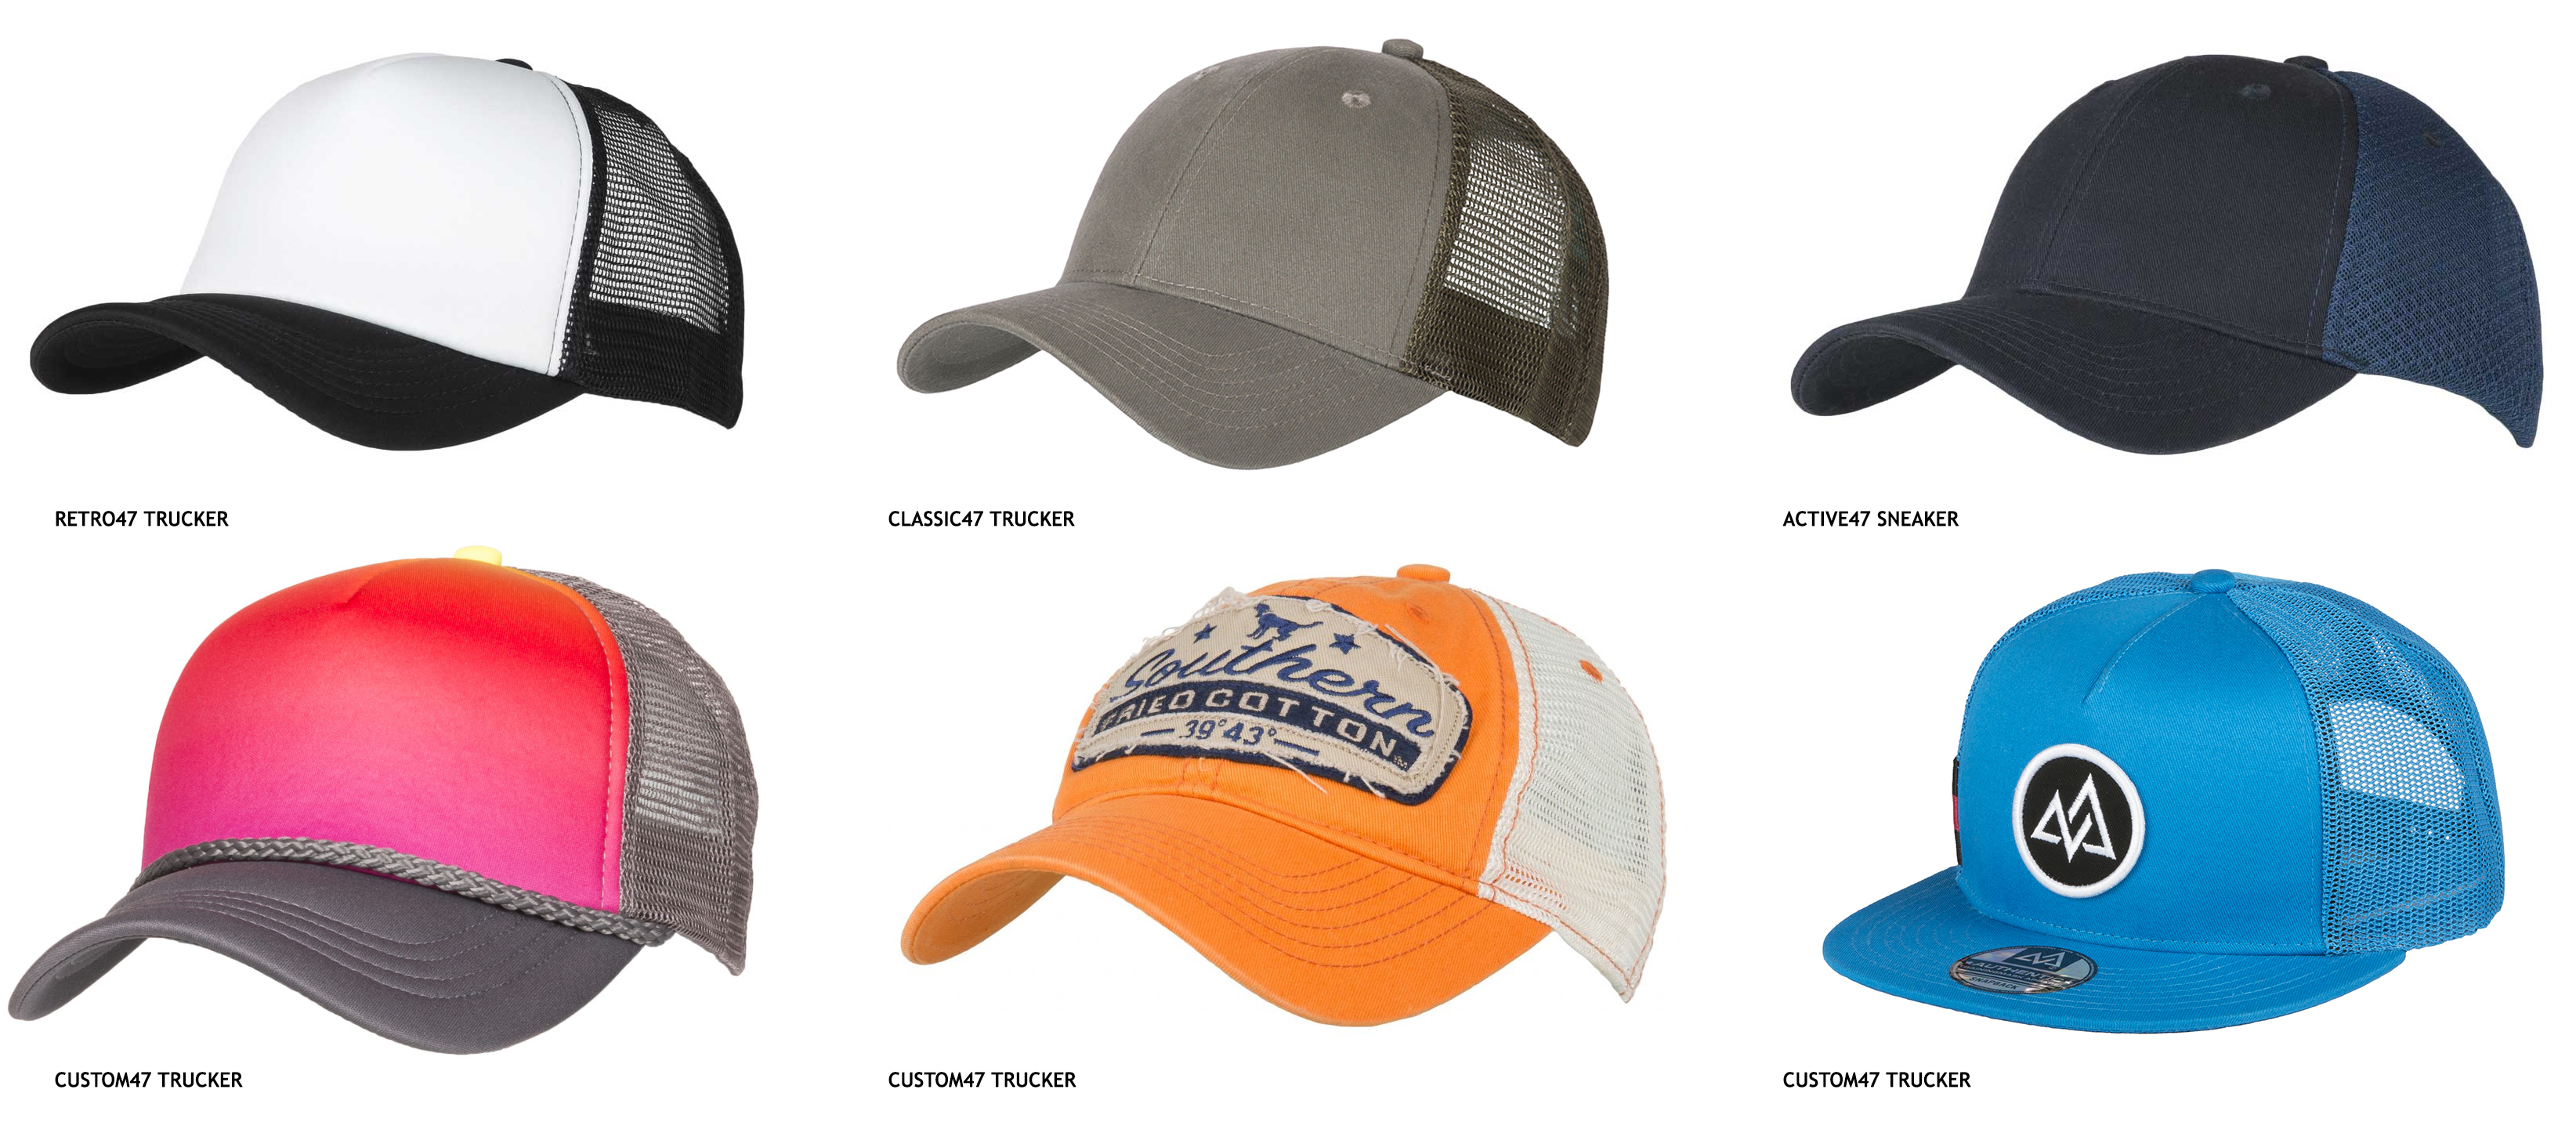 STOCK AND BESPOKE TRUCKER CAPS